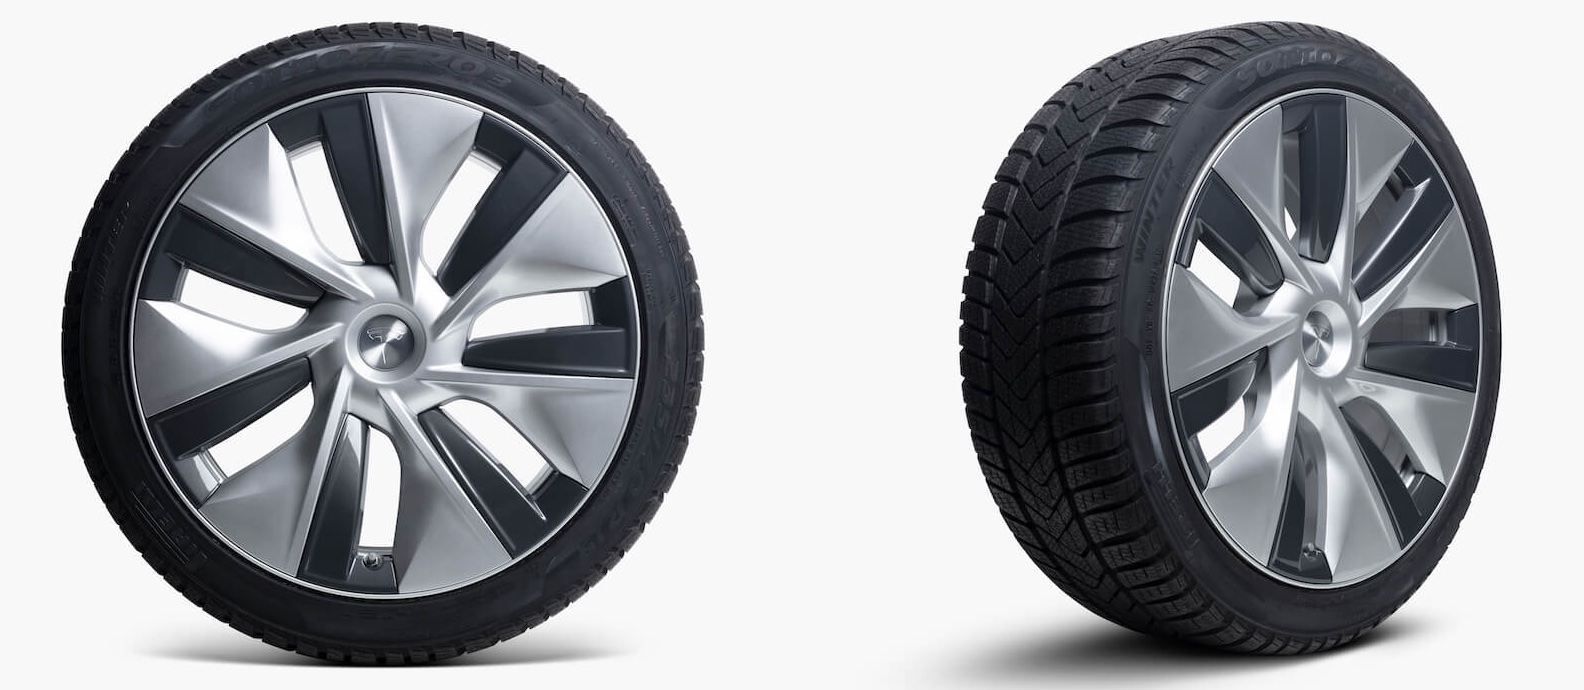 Tesla launches new 'Gemini' wheels for Model 3 Performance